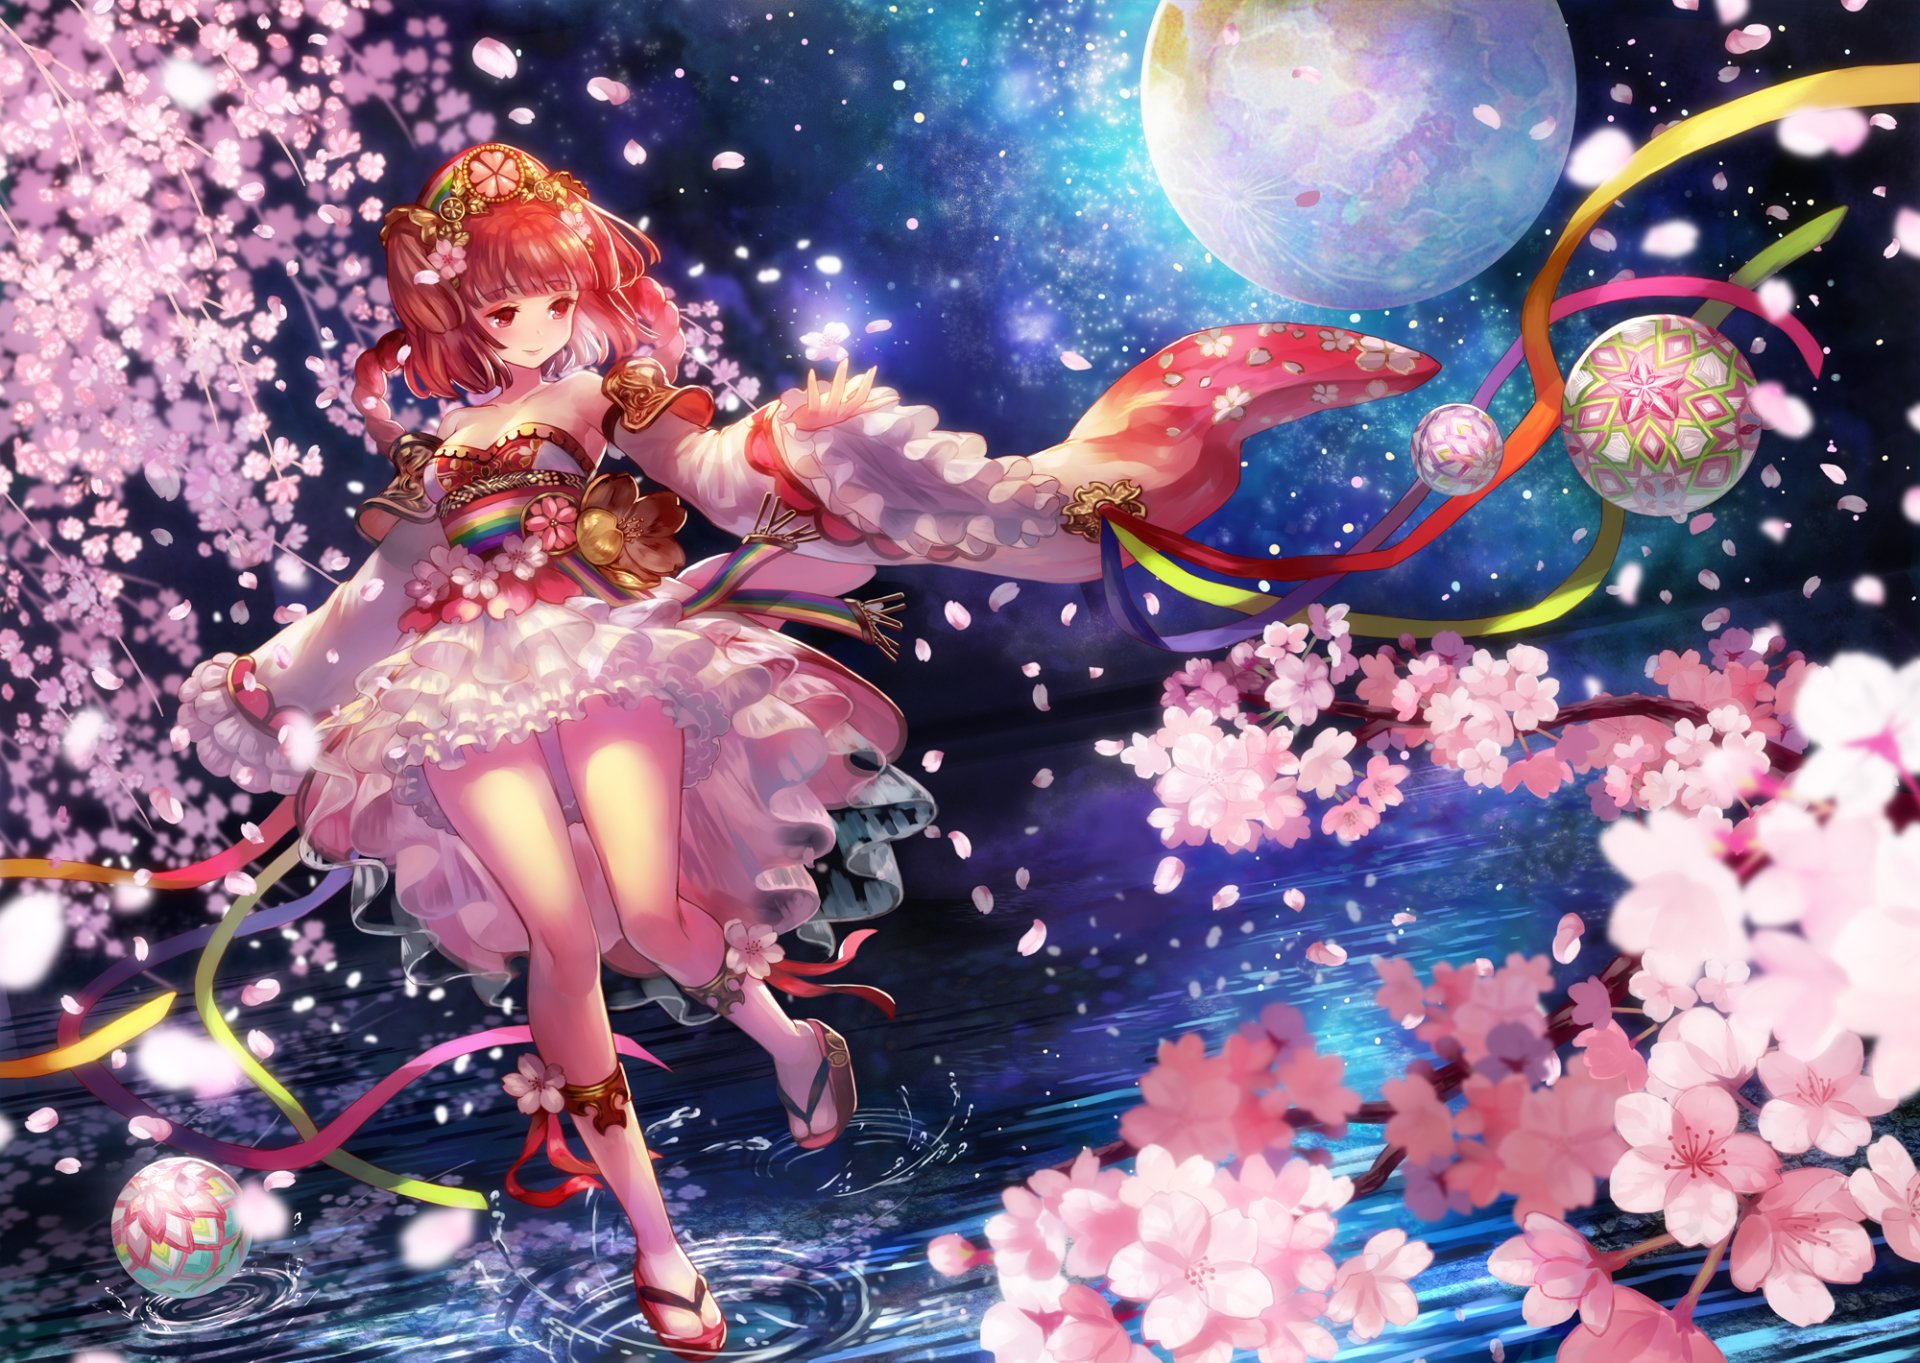 Anime - Original  Anime Original (Anime) Girl Long Hair Red Hair Armor Braid Cherry Blossom Dress Flower Headdress Red Eyes Twintails Ribbon Water Wallpaper